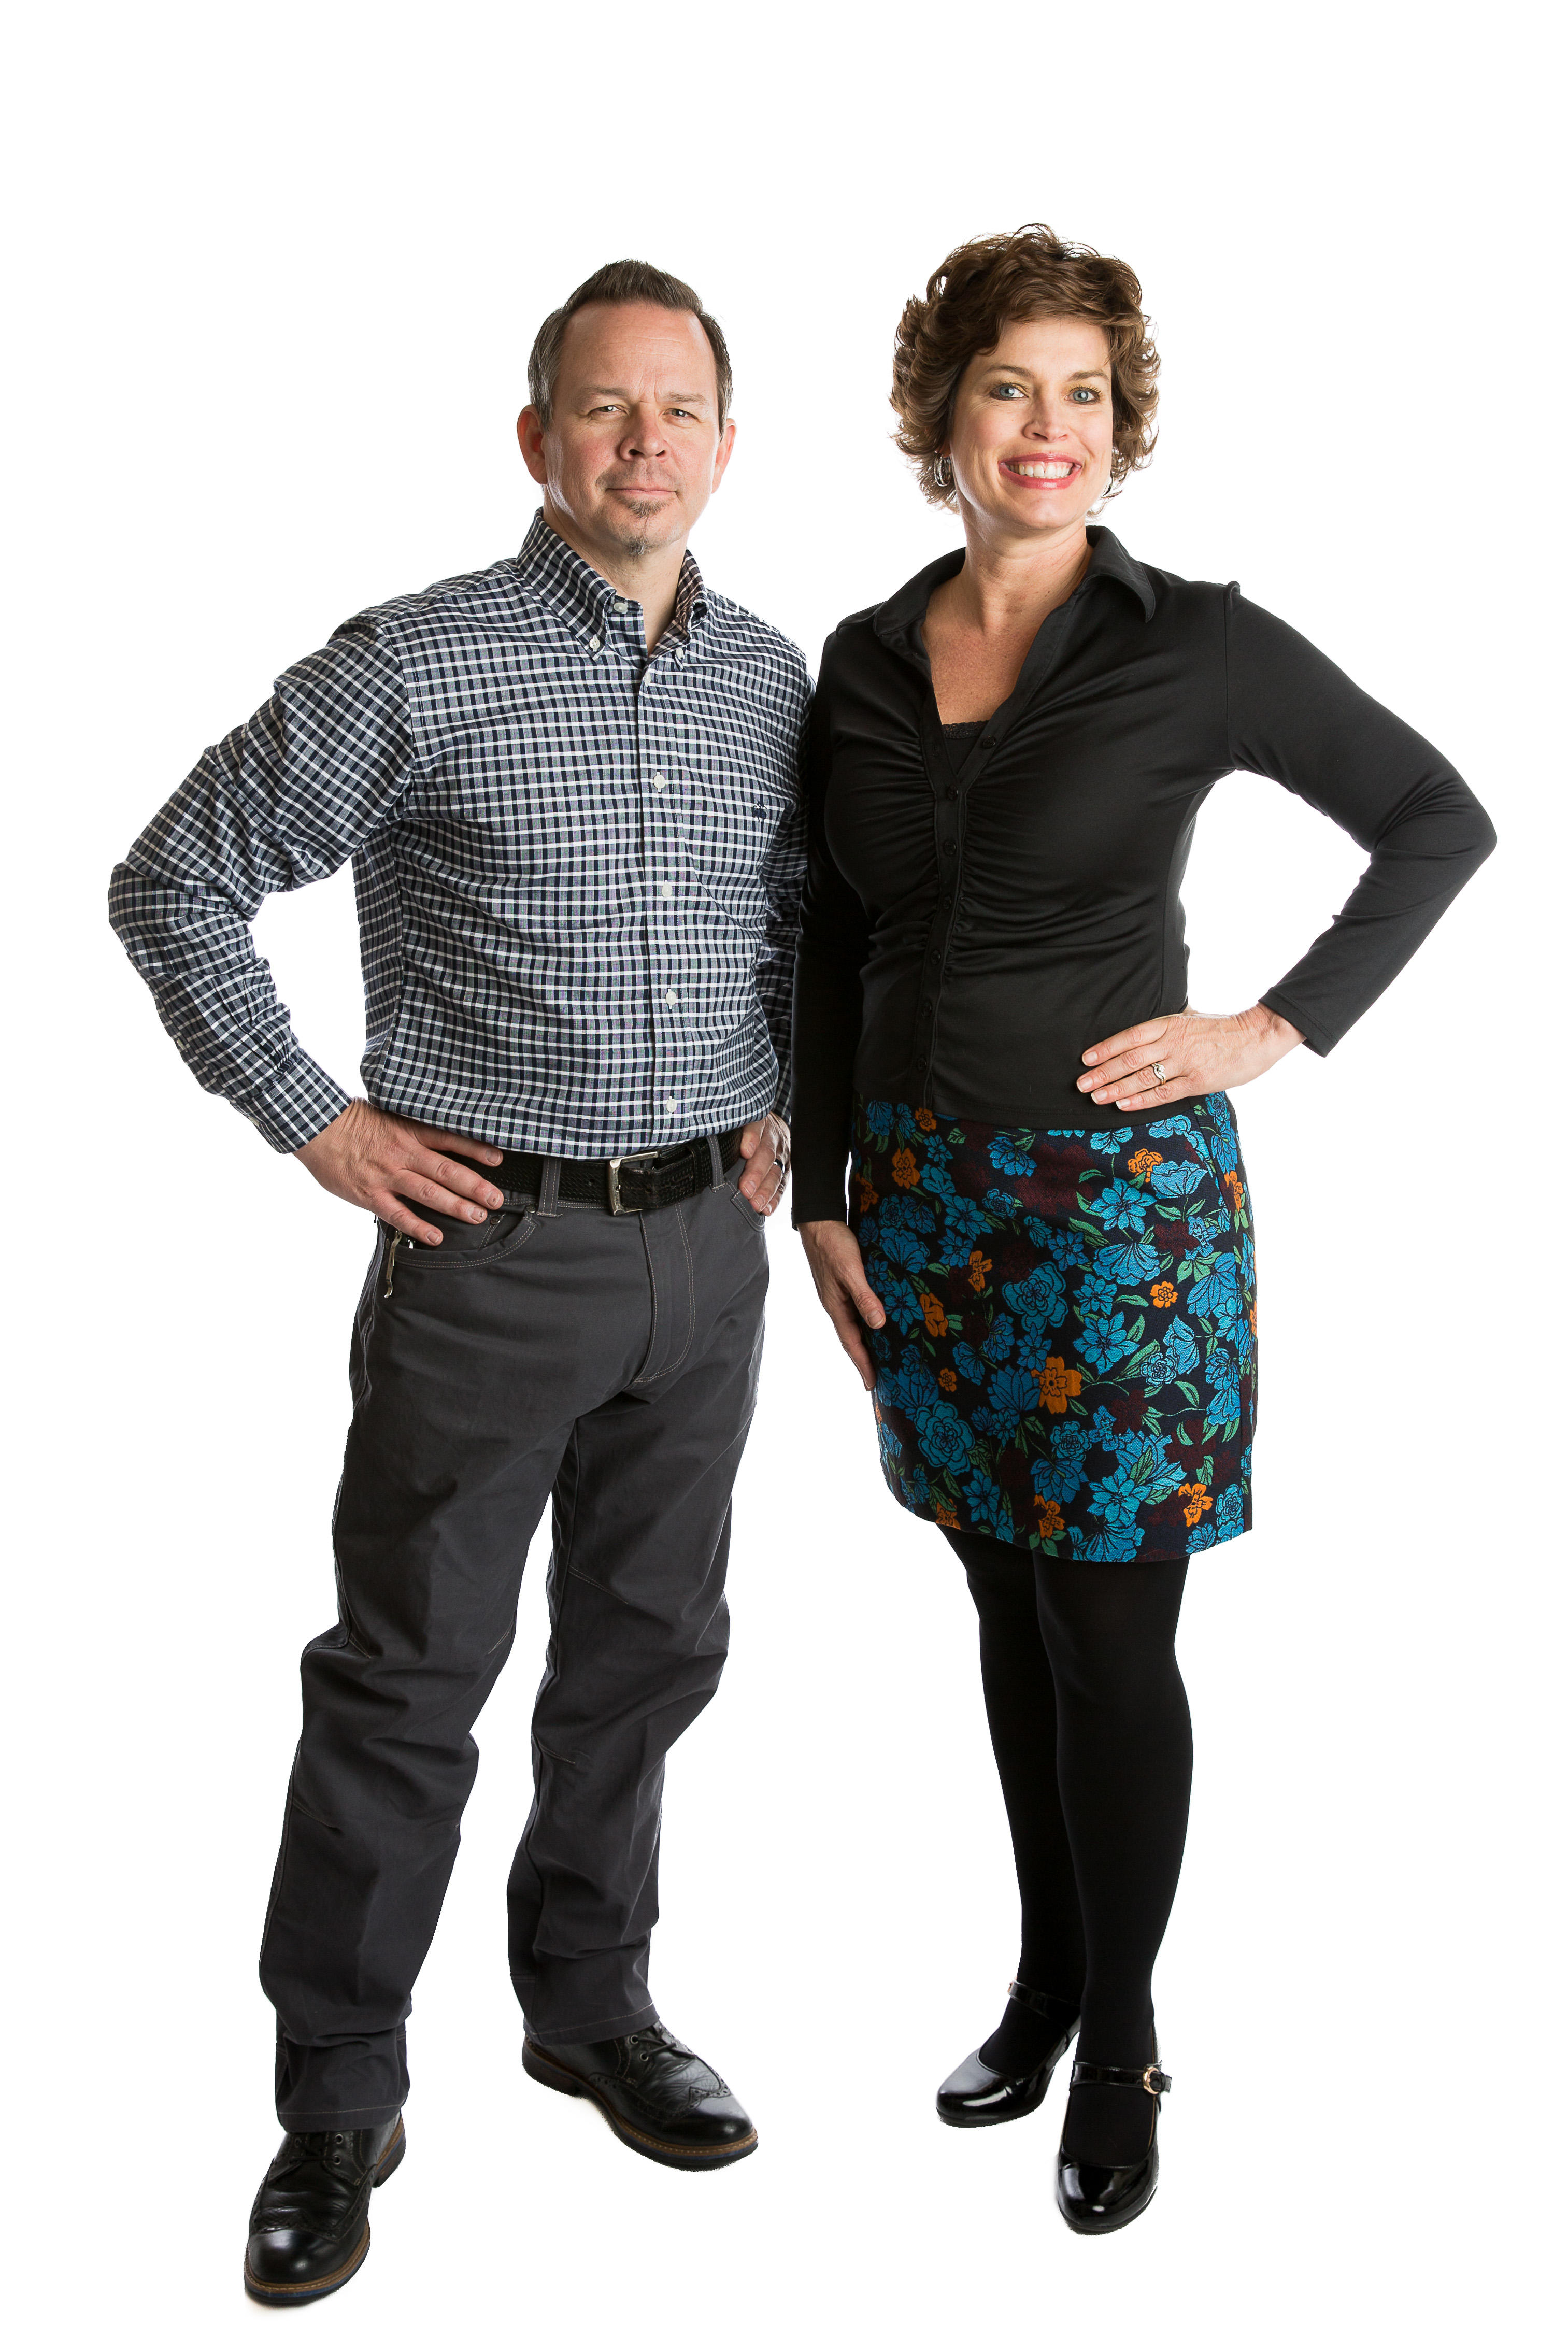 Aaron Peterson and Sherry Exum-Peterson - The Wells Group image 0